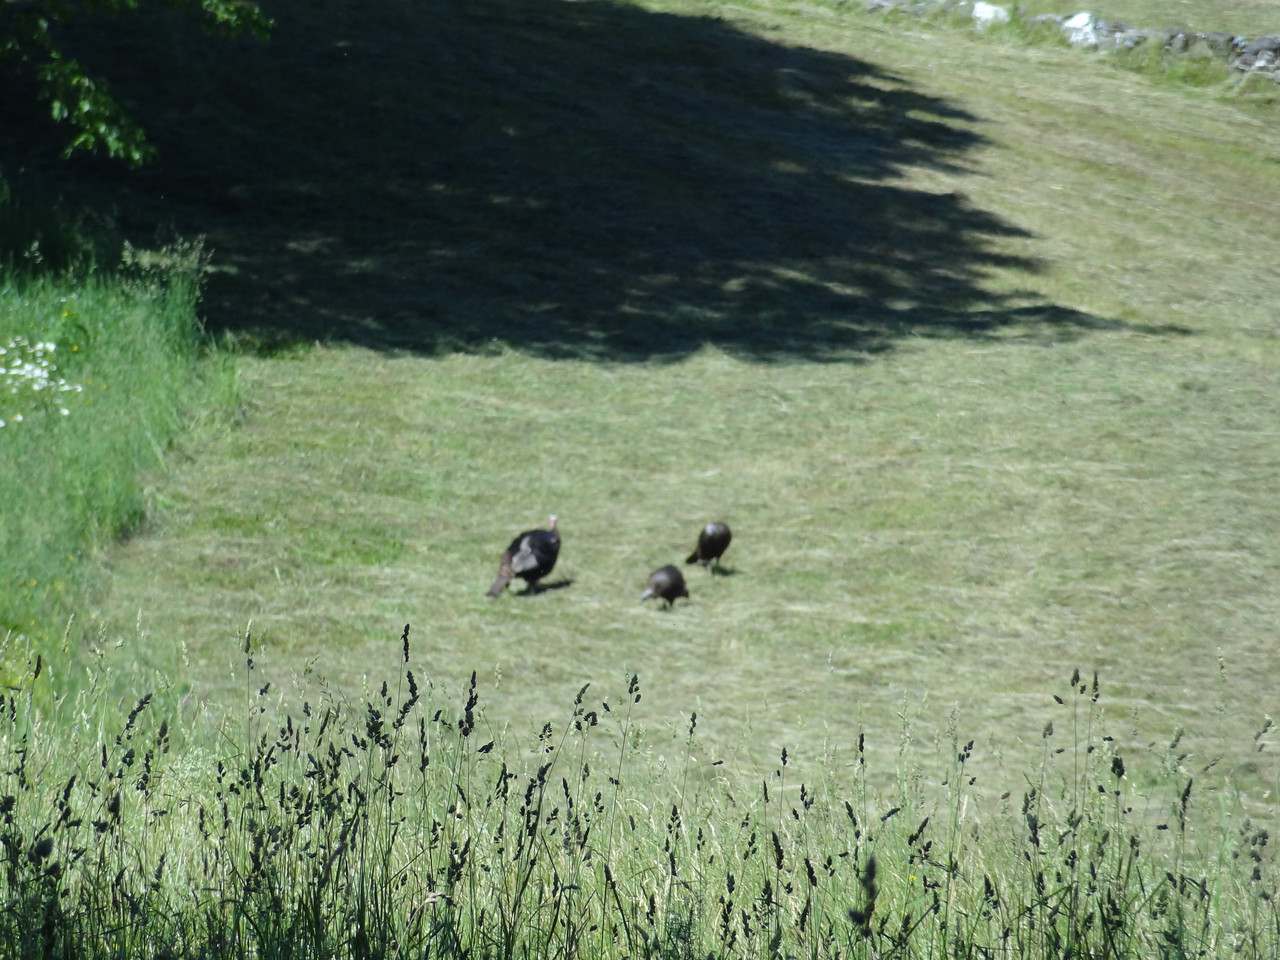 The wild turkey, or Meleagris gallopavo as I like to call them. A hen and two jakes.